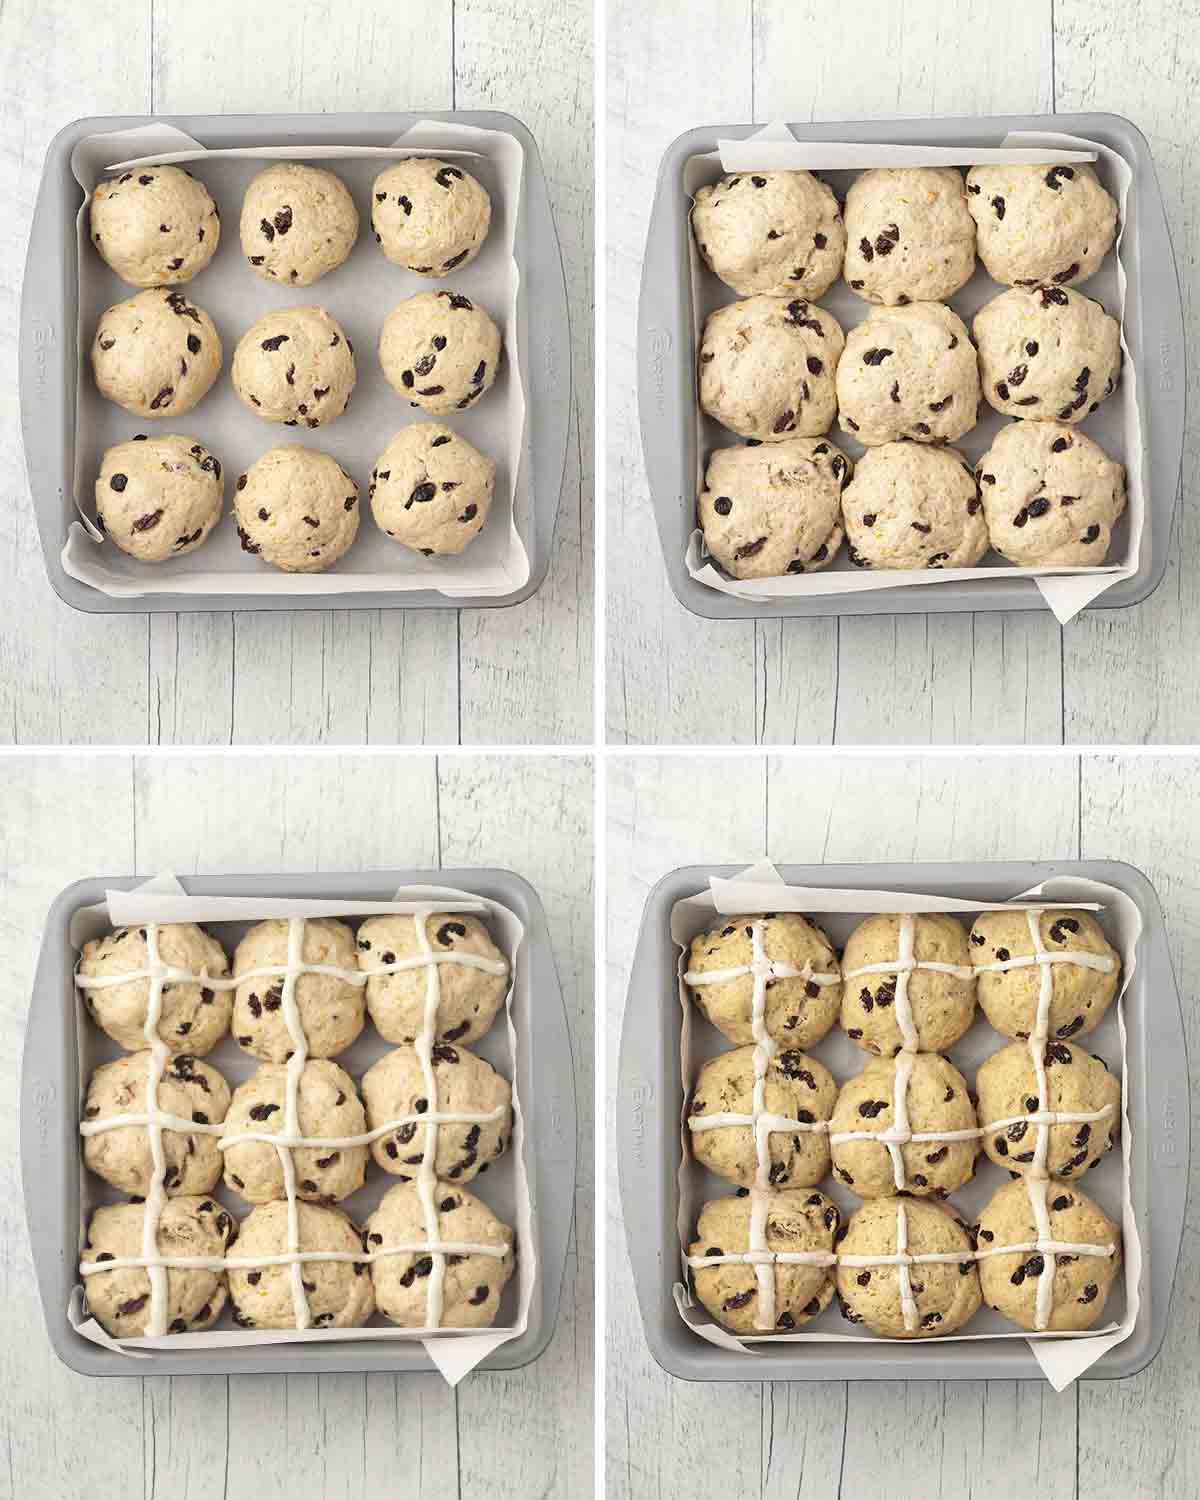 A collage of four images showing the second sequence of steps needed to make gluten-free hot cross buns.